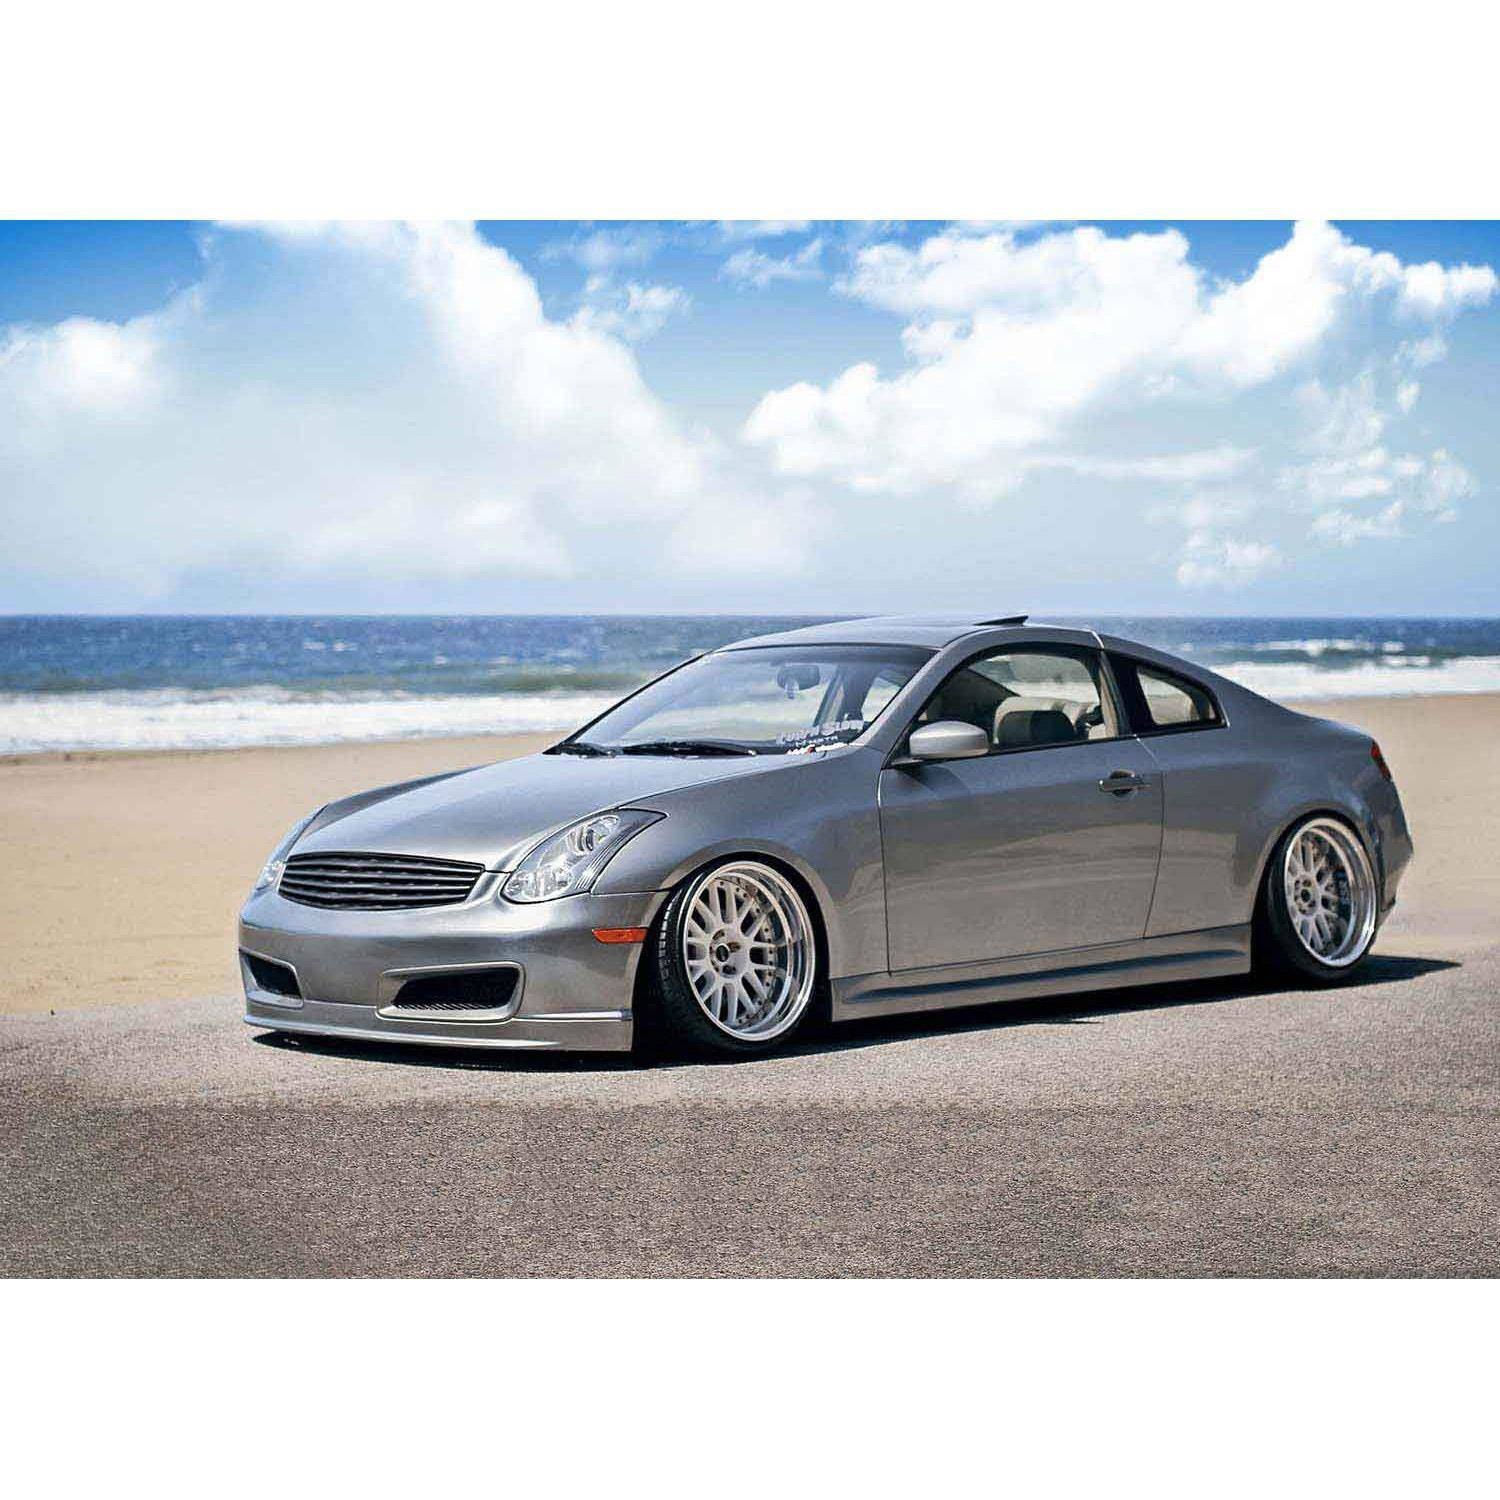 wsupercars picture hd coupe images wallpapers infiniti infinity